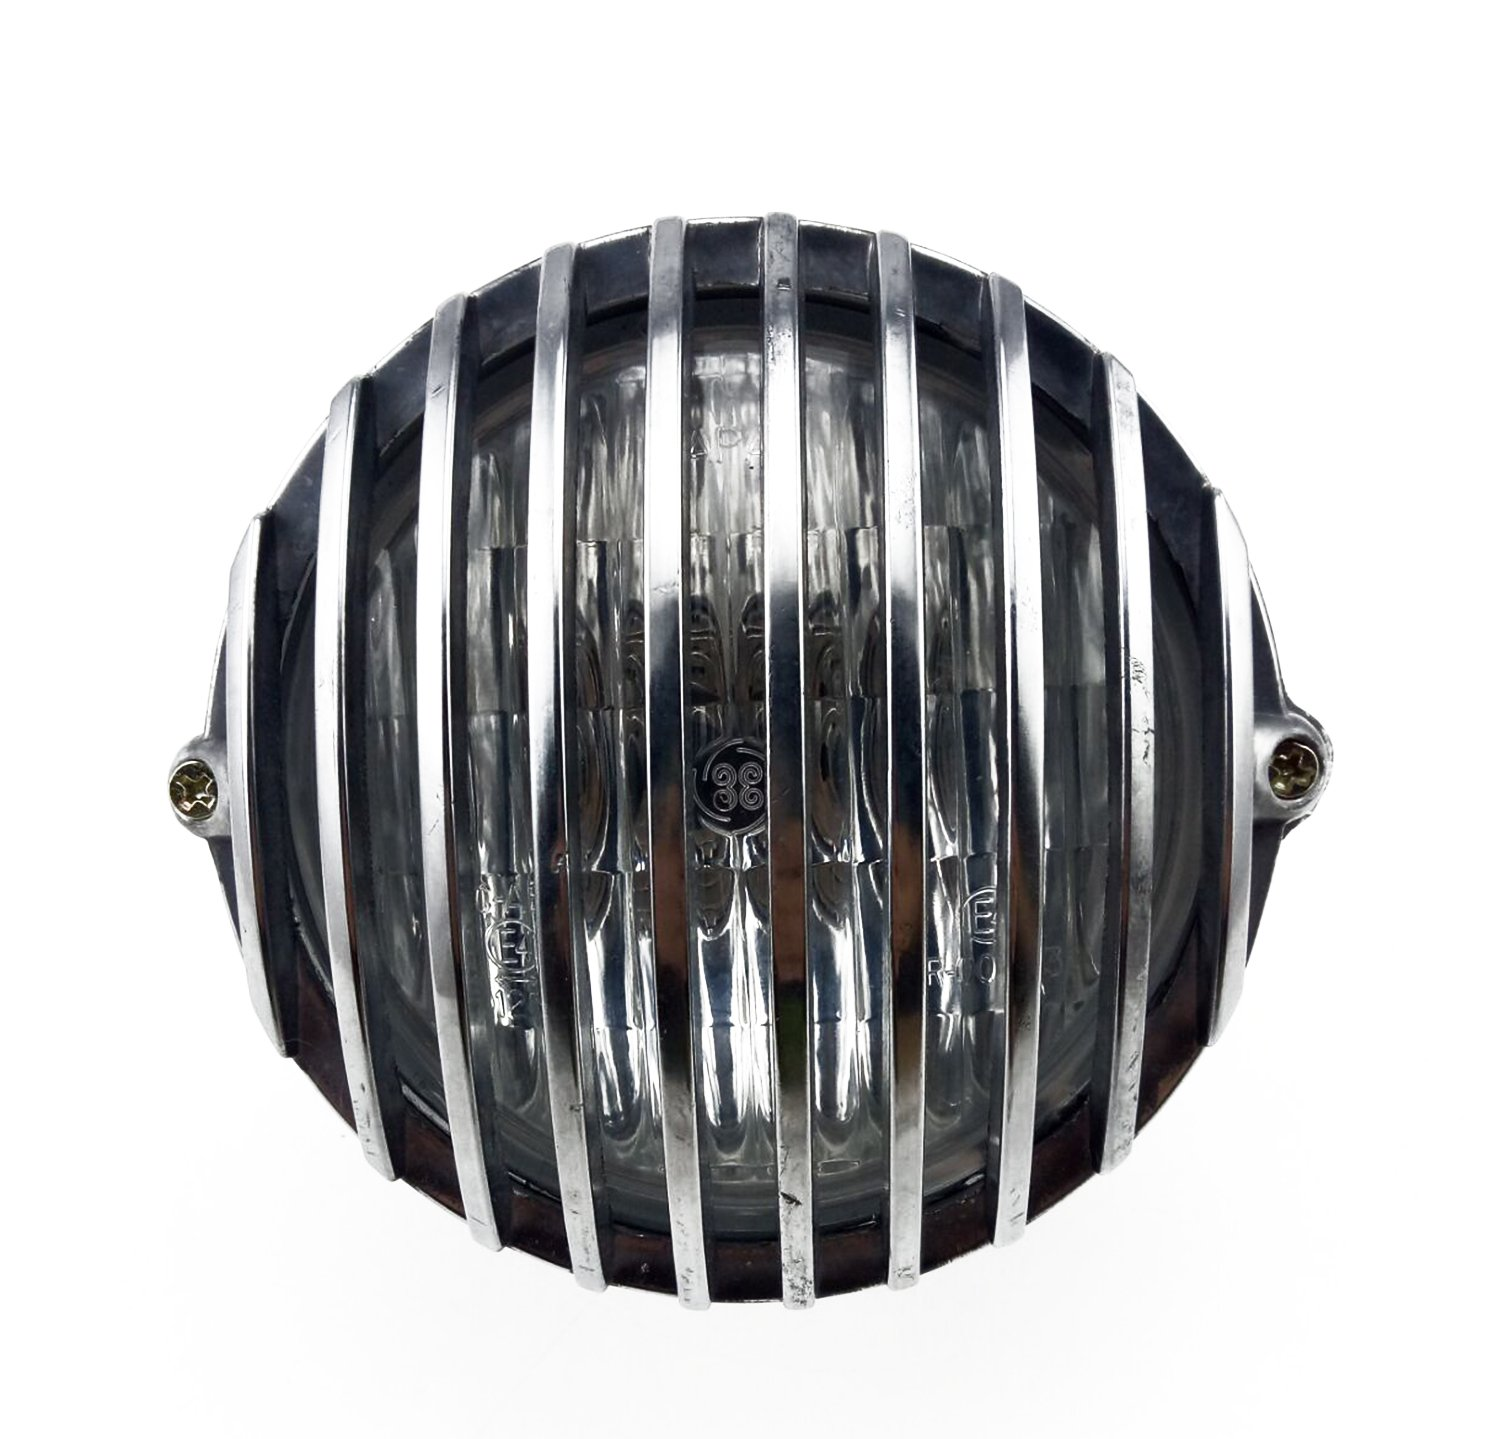 TASWK 5'' Motorcycle Headlight Grill Prison Chopper Bobber Head Lamp (Chrome)